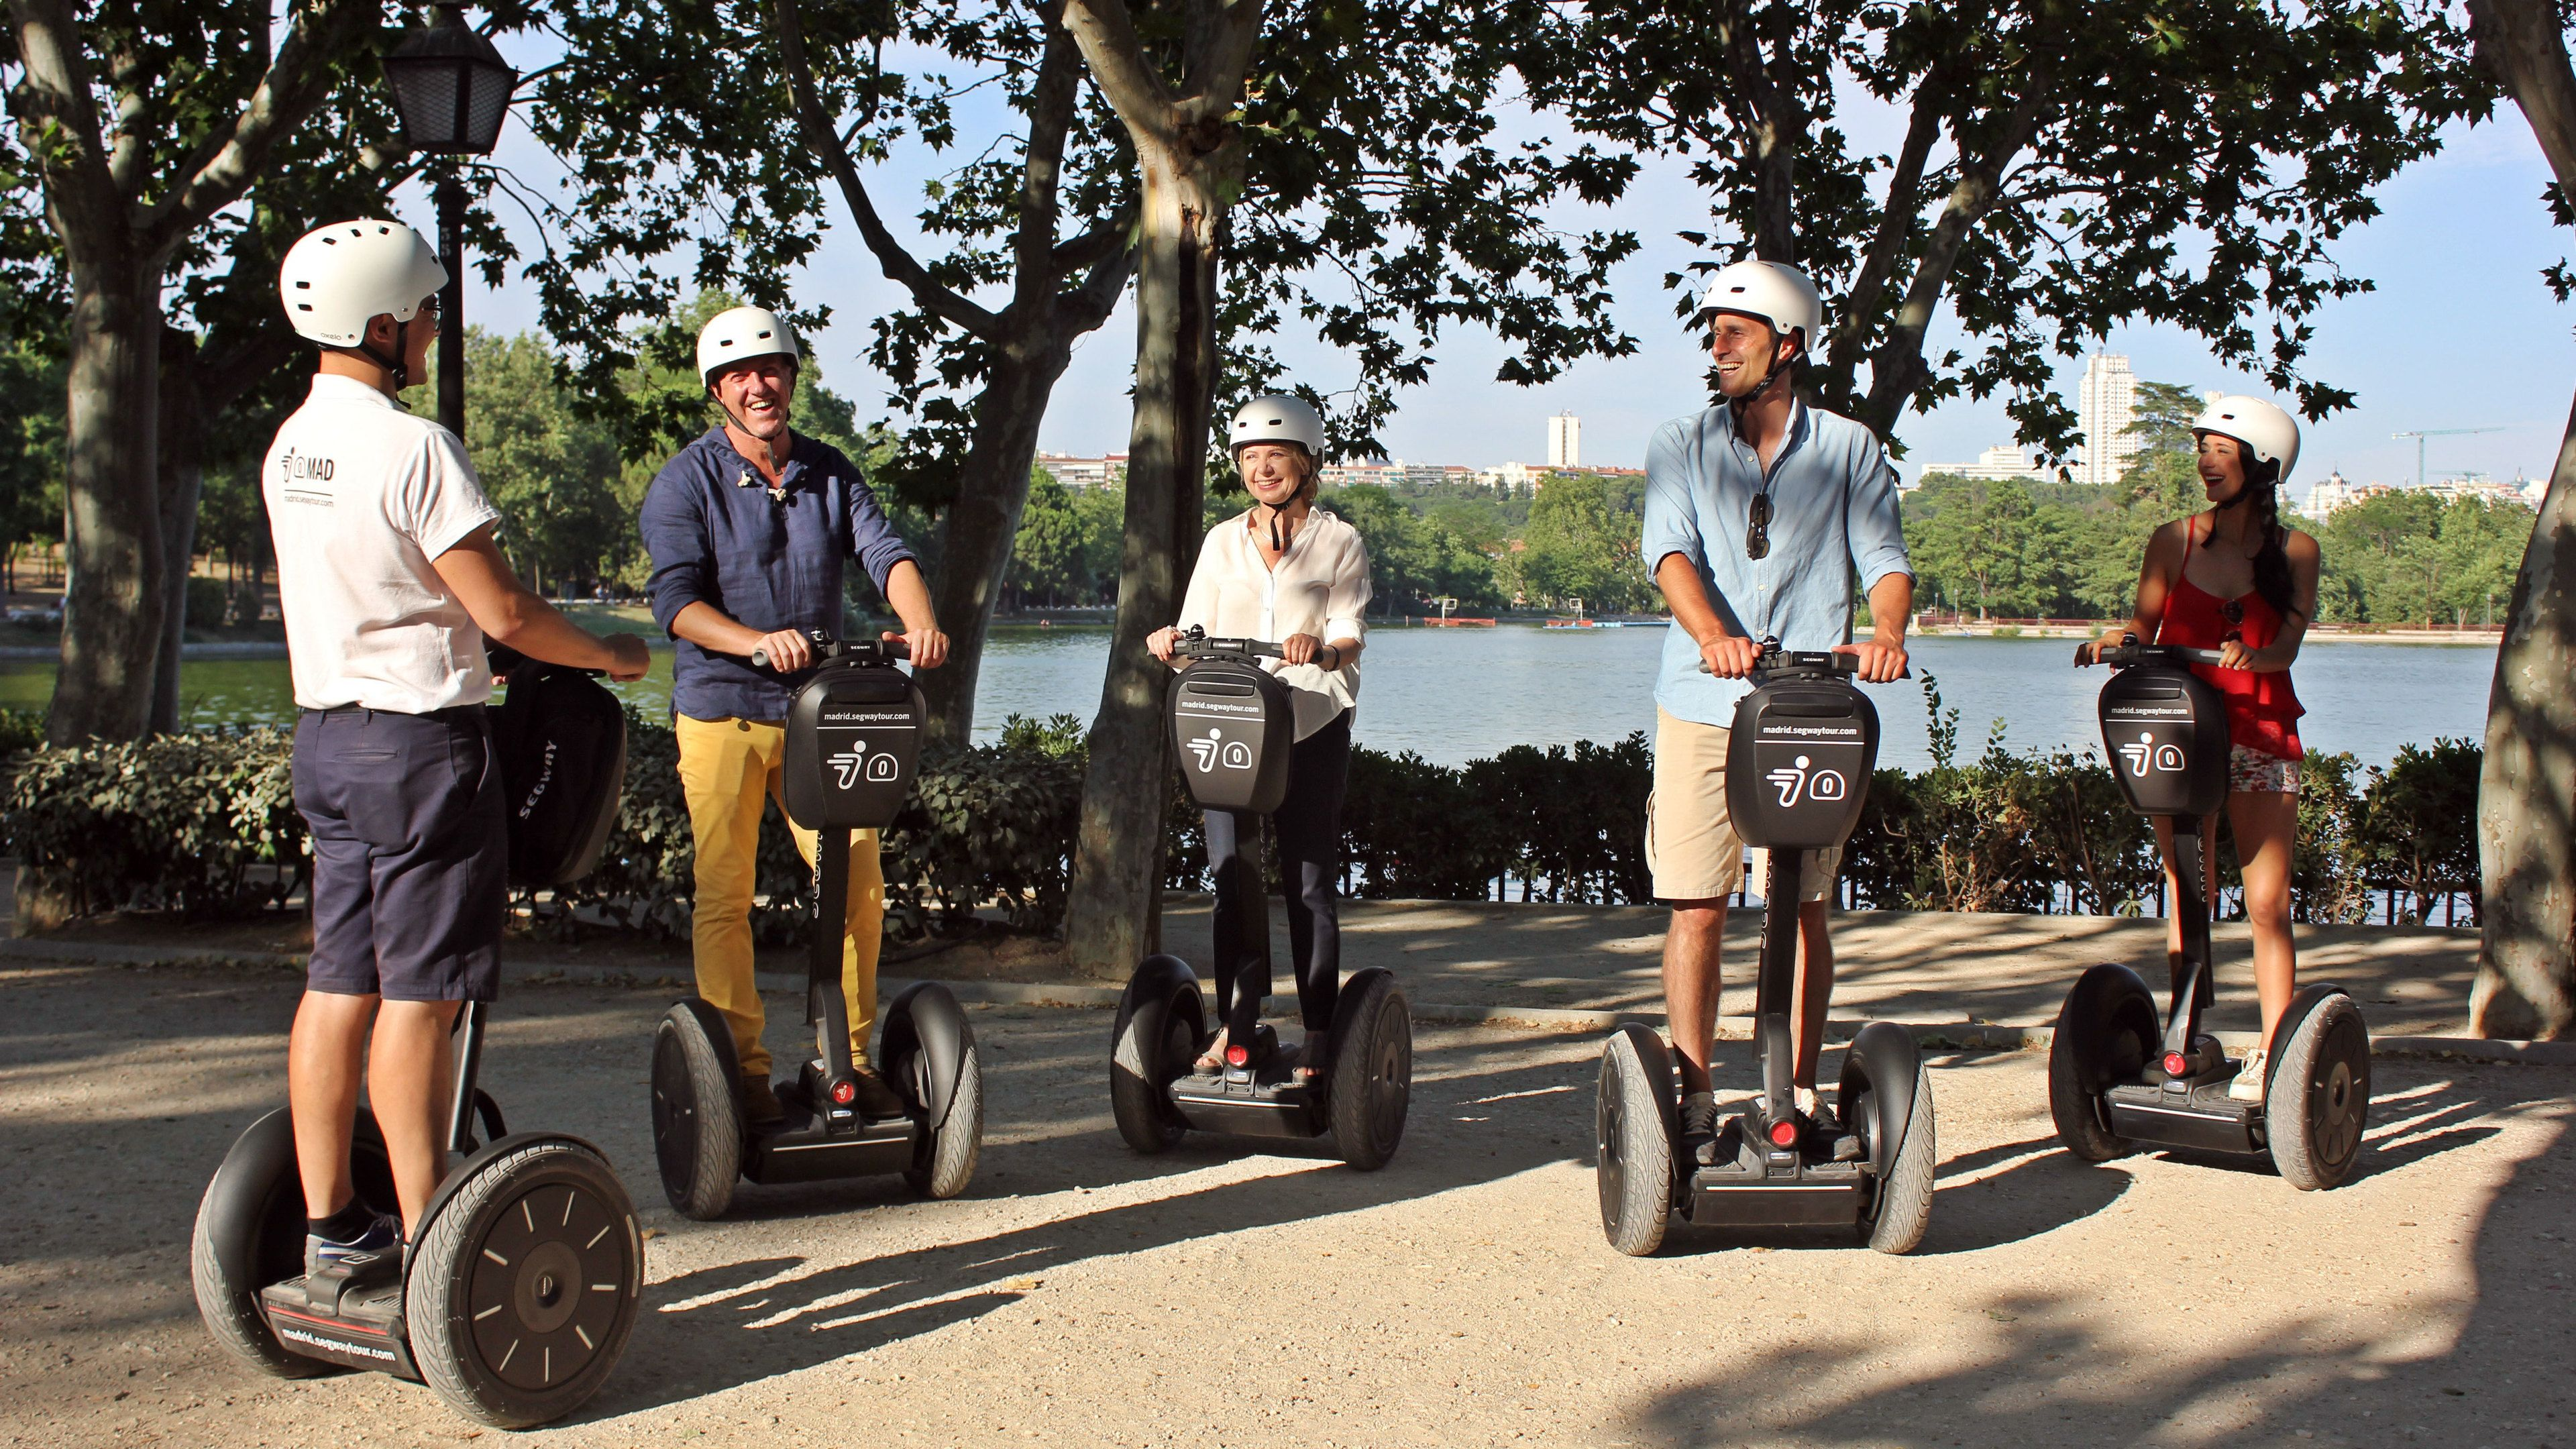 Segway group on a lakeside path in Madrid